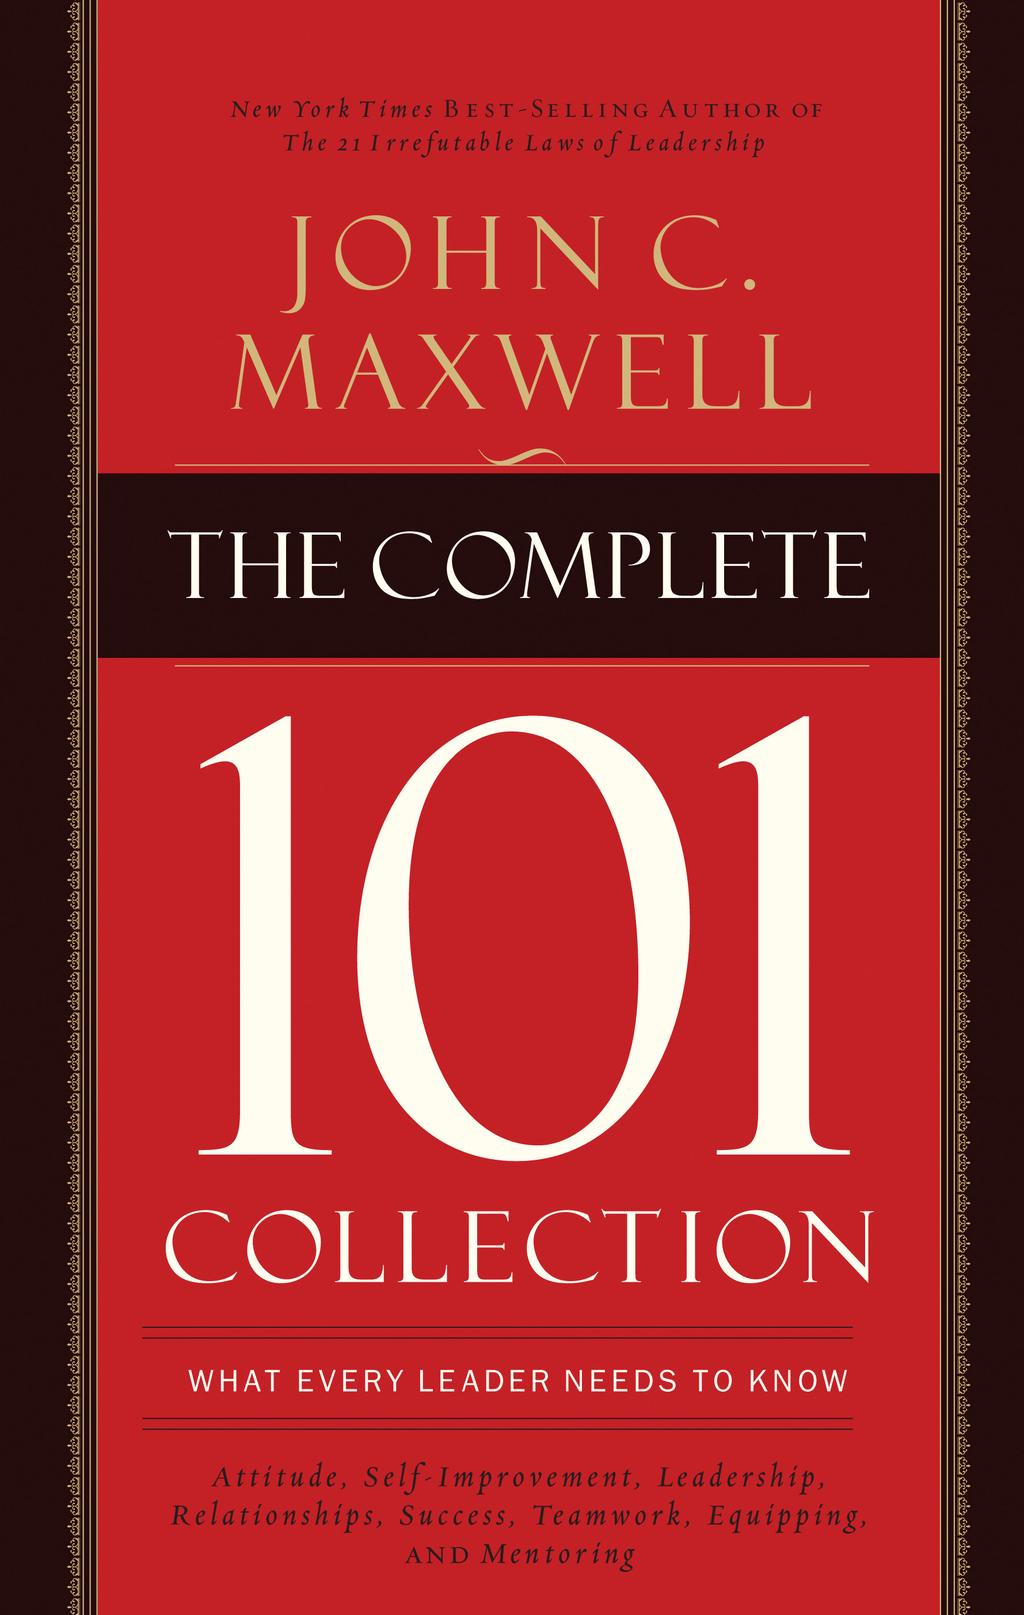 The Complete 101 Collection By: John C. Maxwell